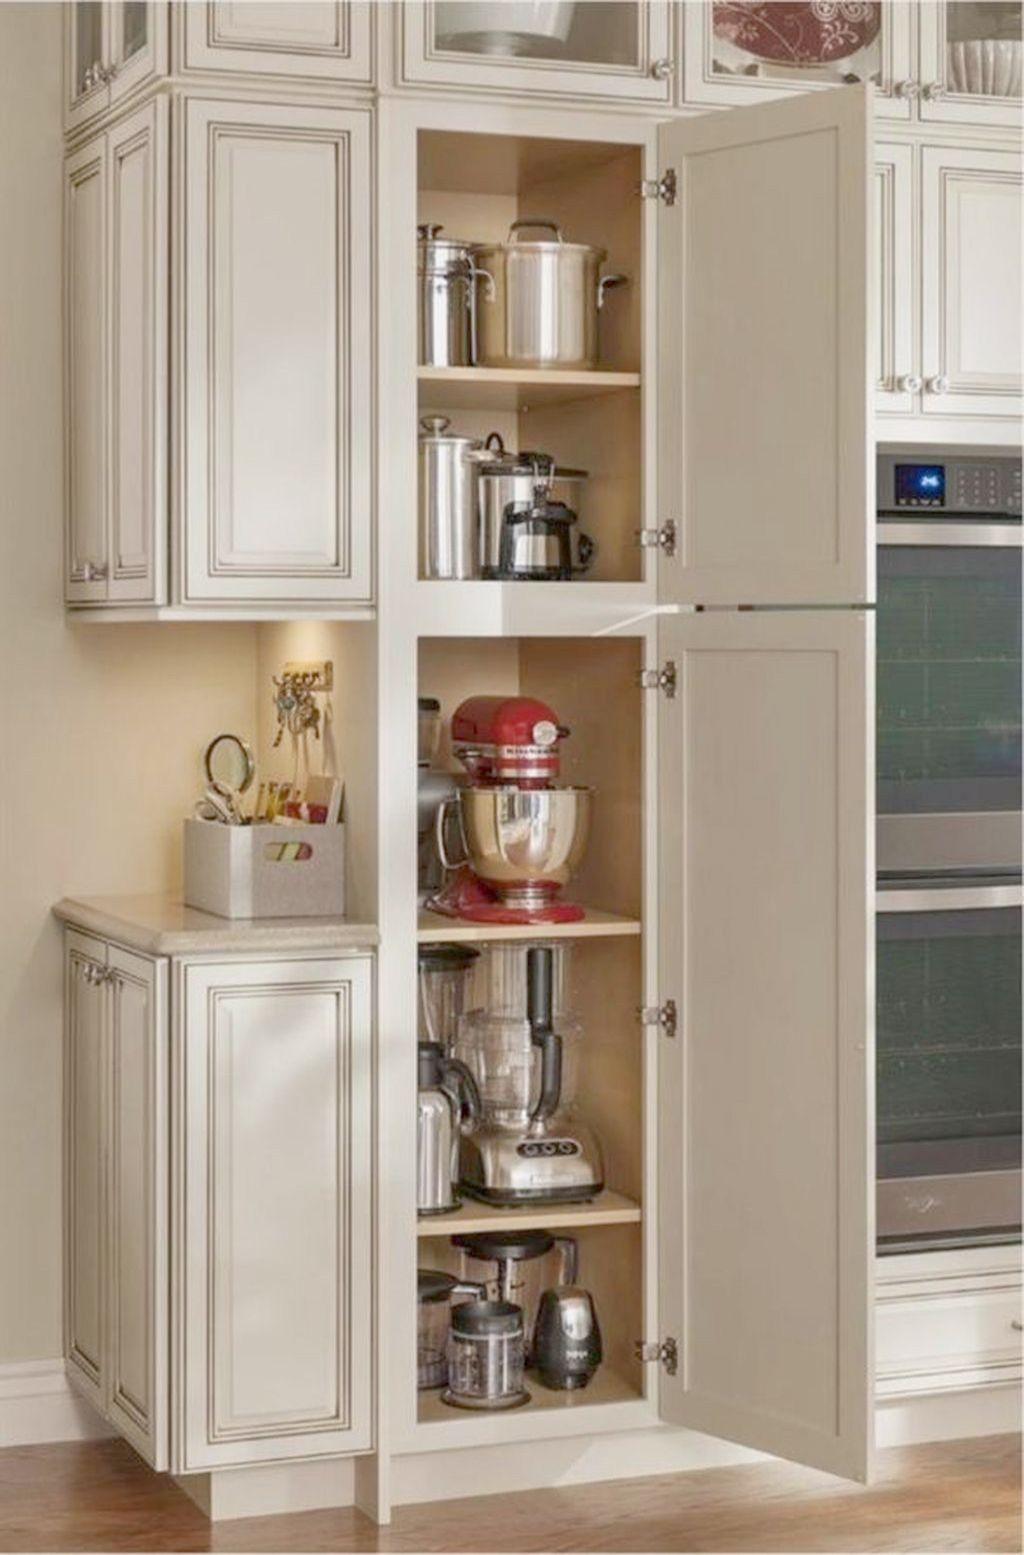 Furniture Stores Near Me Open Few Furniture Manufacturers Kitchen Remodel Small Best Kitchen Cabinets New Kitchen Cabinets